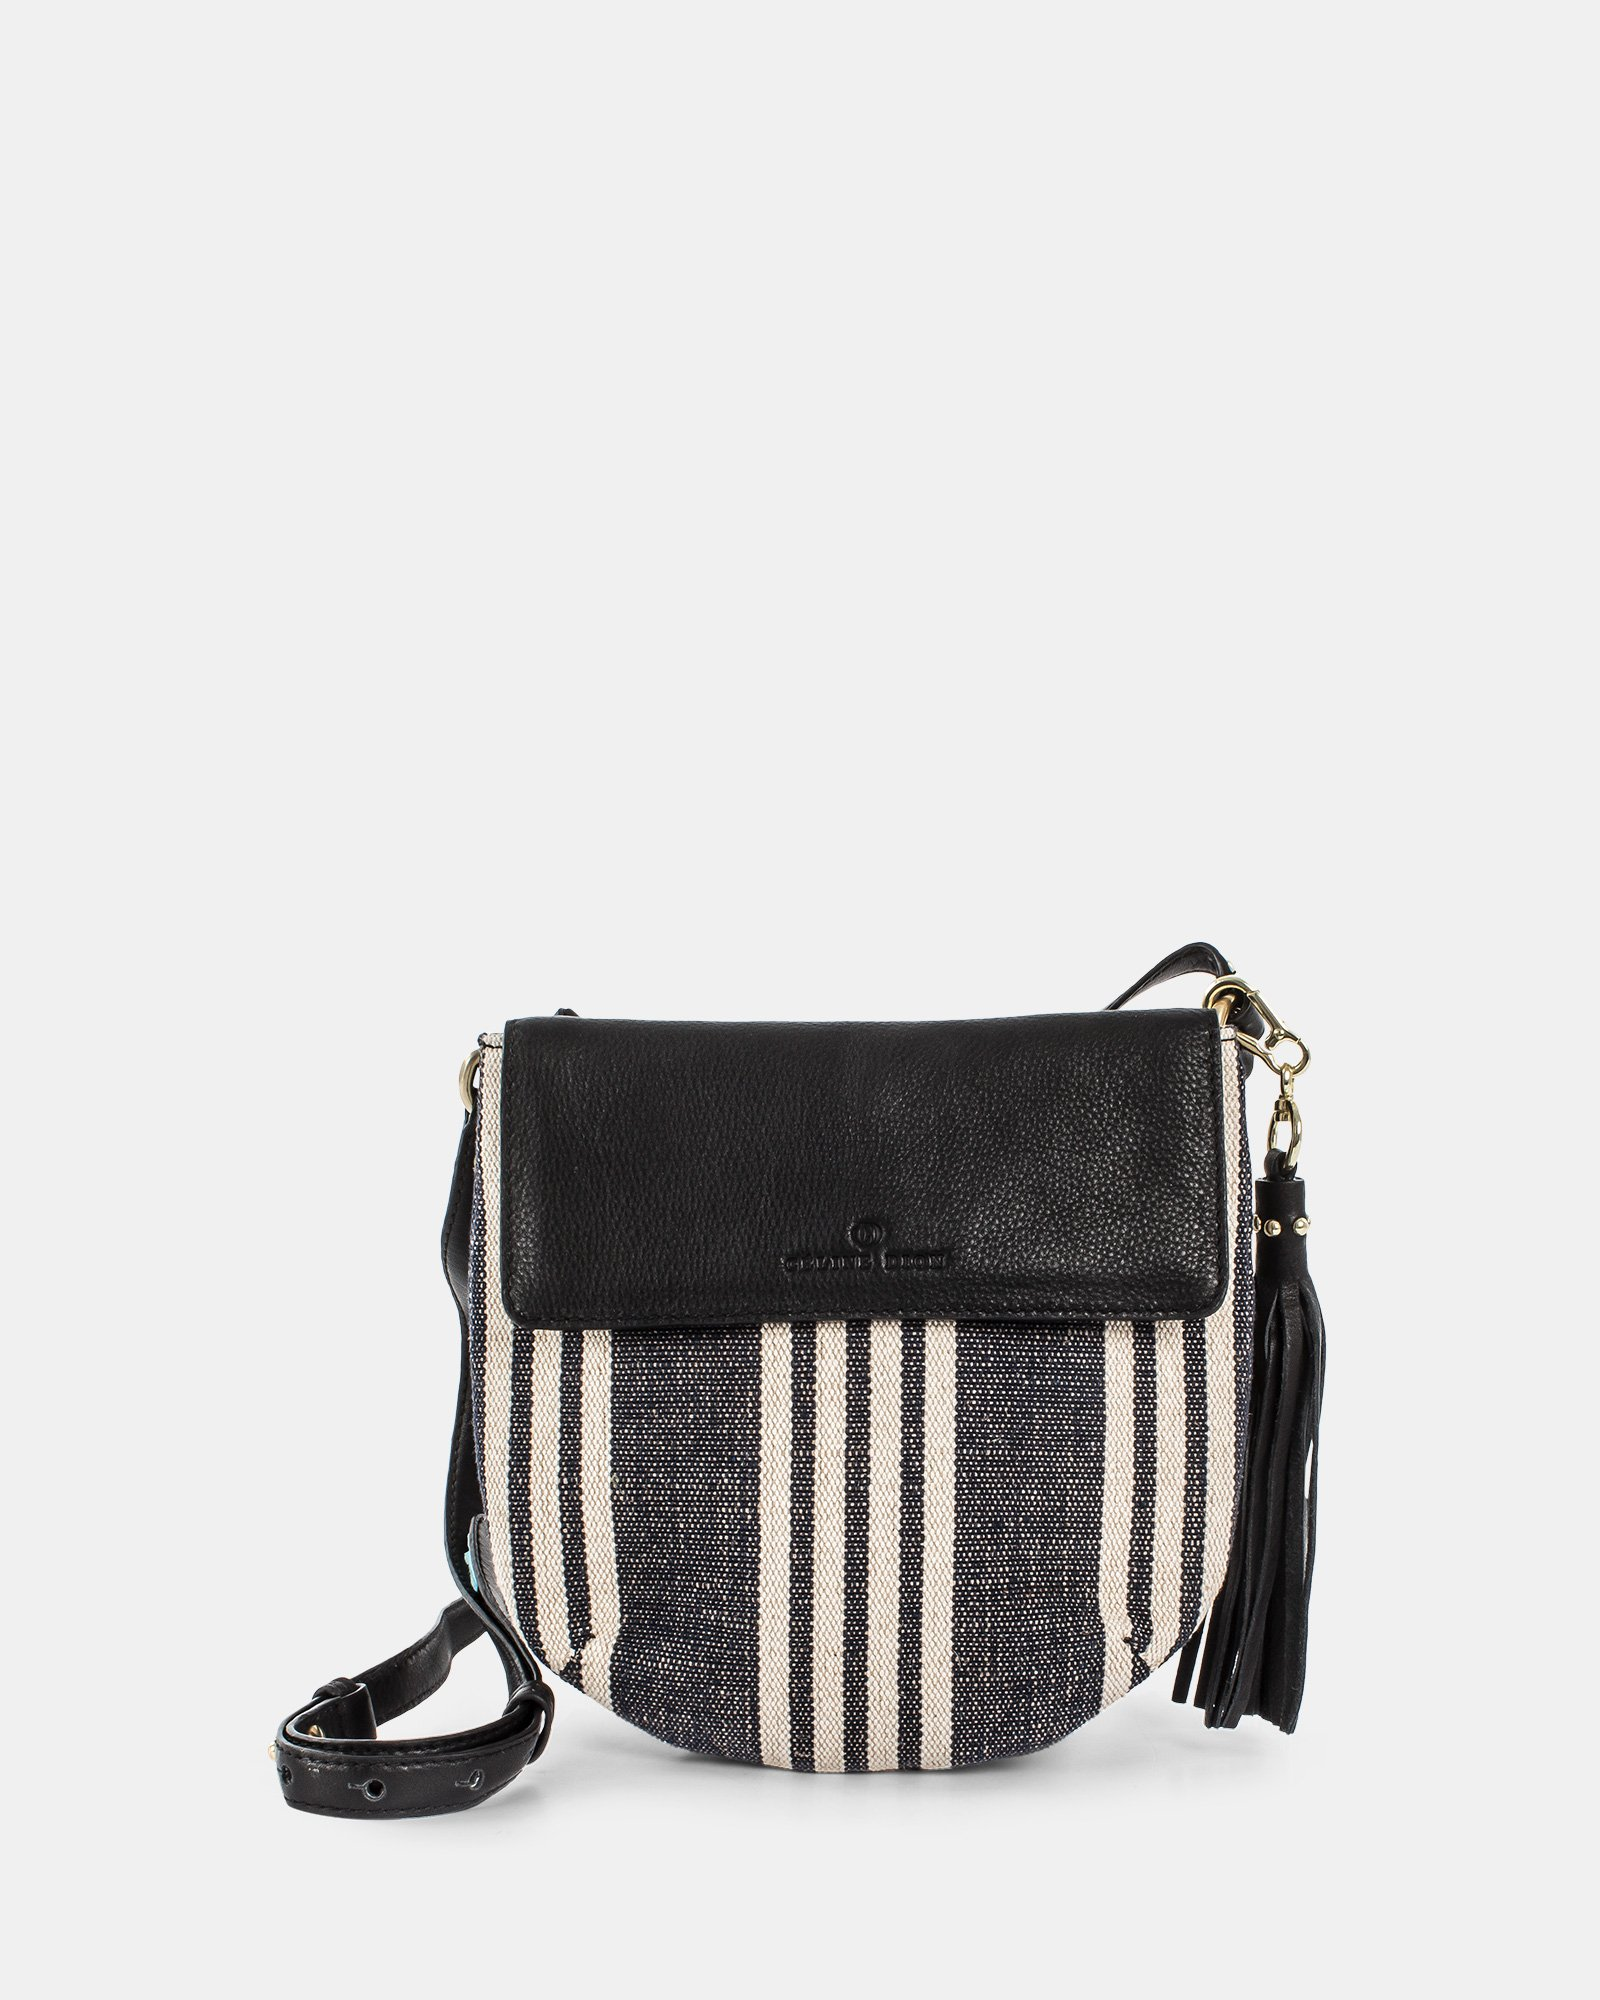 FORTE - Crossbody in canvas with Adjustable & removable leather strap - Stripe/black  - Céline Dion - Zoom